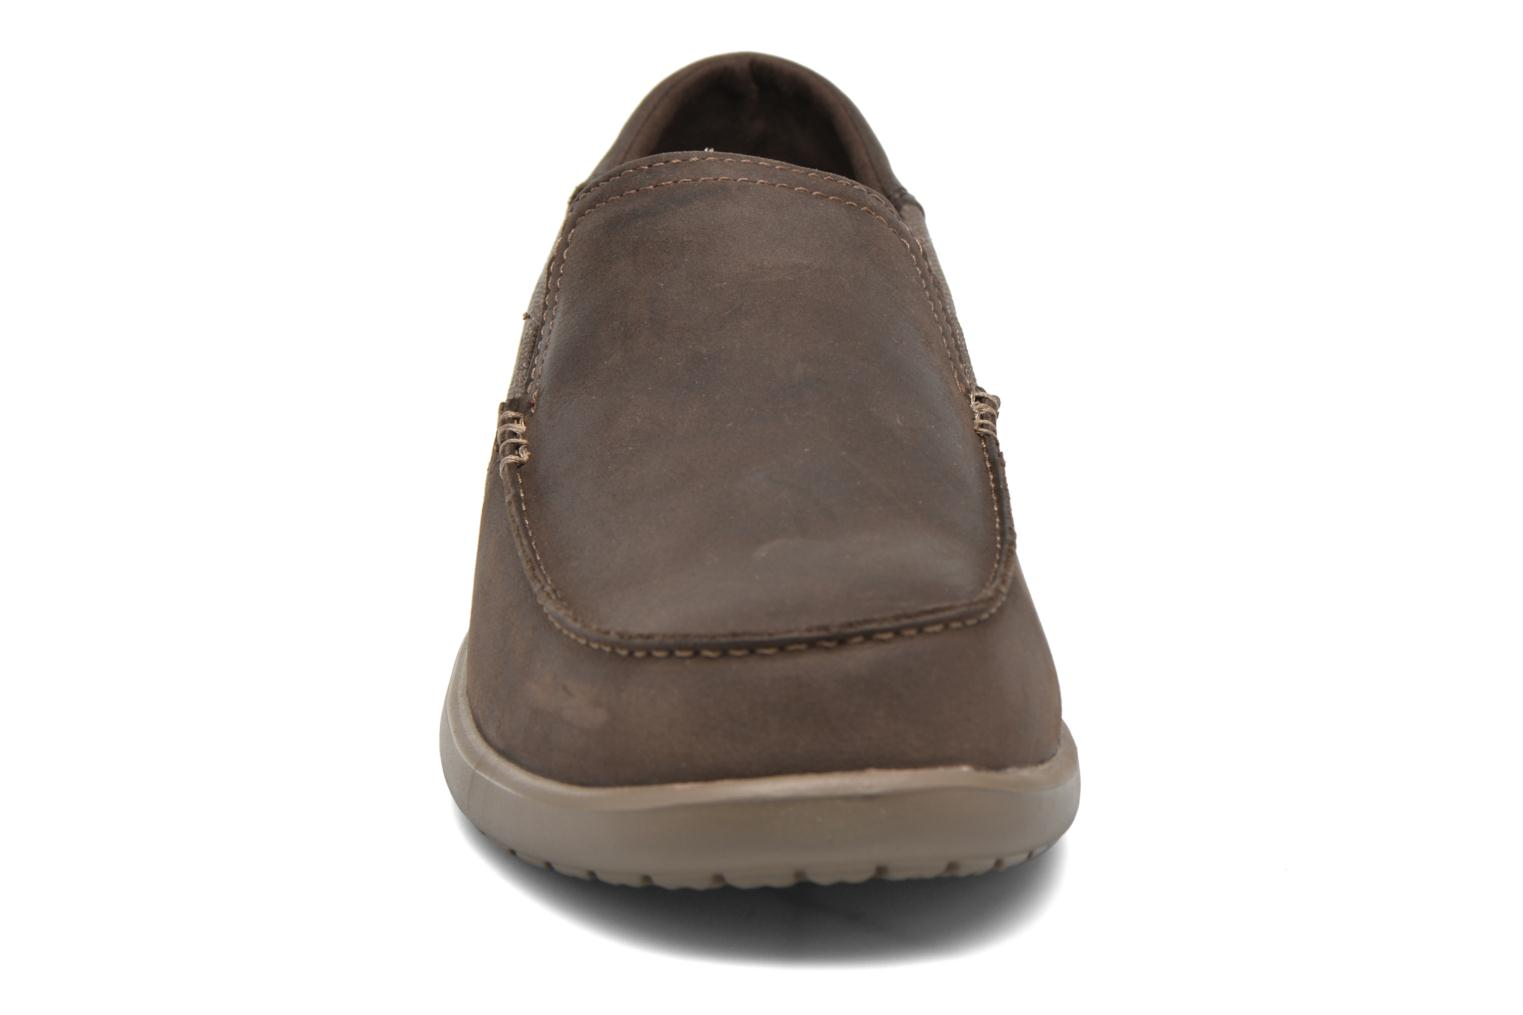 Santa Crocs Leather M Espresso 2 Cruz Luxe Walnut VpLqzSUMG